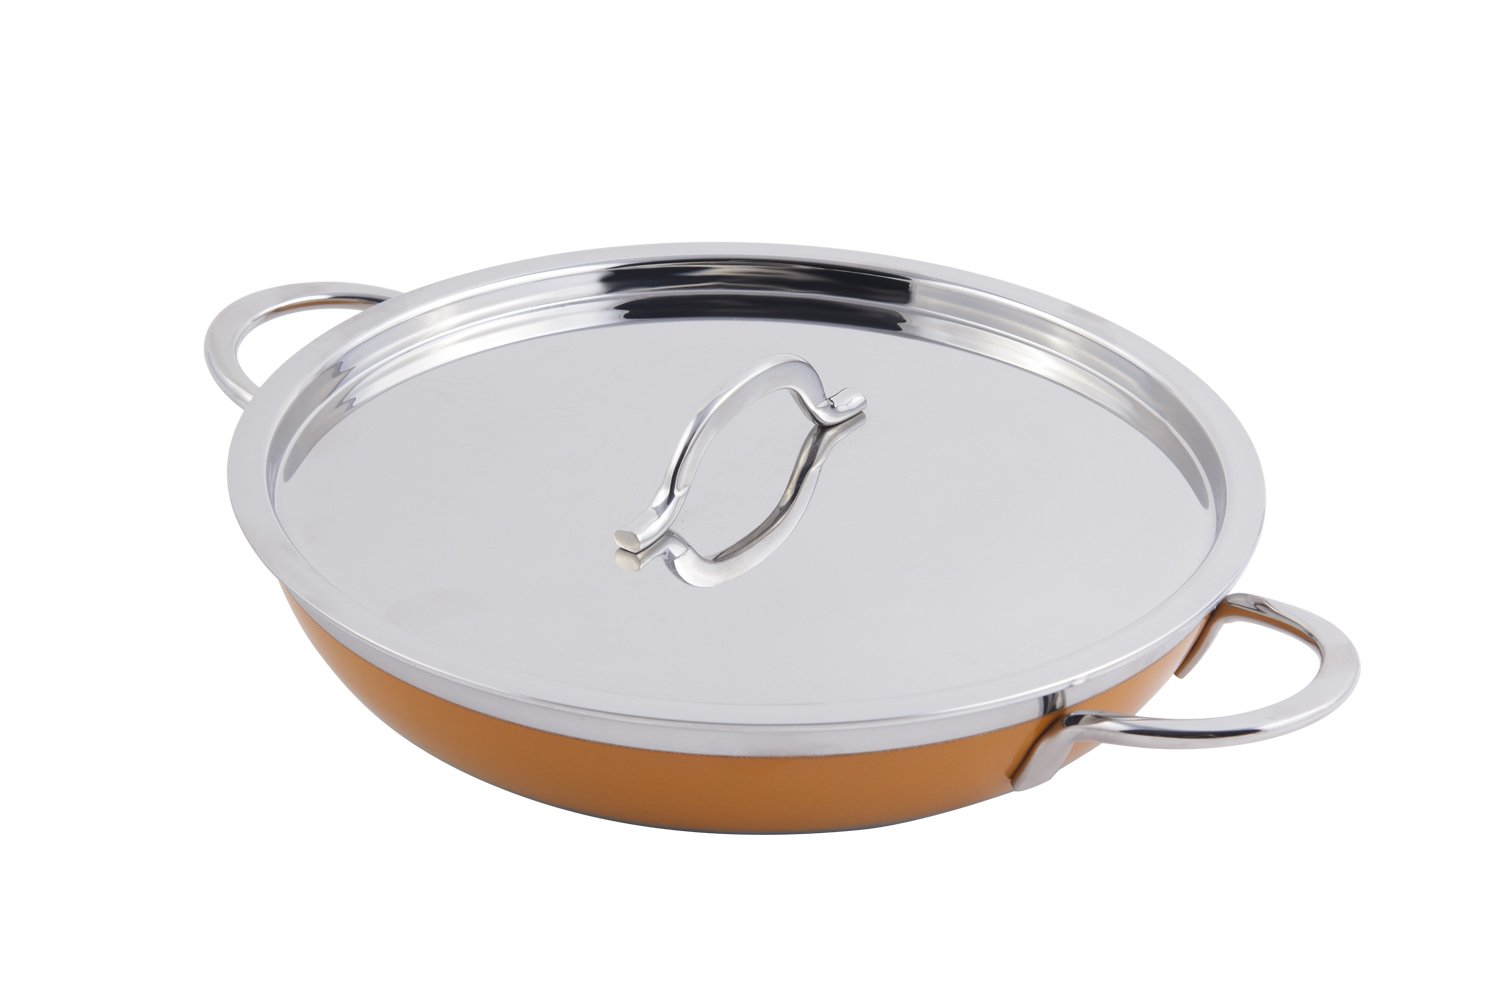 Bon Chef 60306 Stainless Steel/Aluminum Classic Country French Collection Saute Pan/Skillet with Cover and Double Handle, 3-1/8 quart Capacity, 11-5/8'' Diameter x 2-3/8'' Height, Yellow